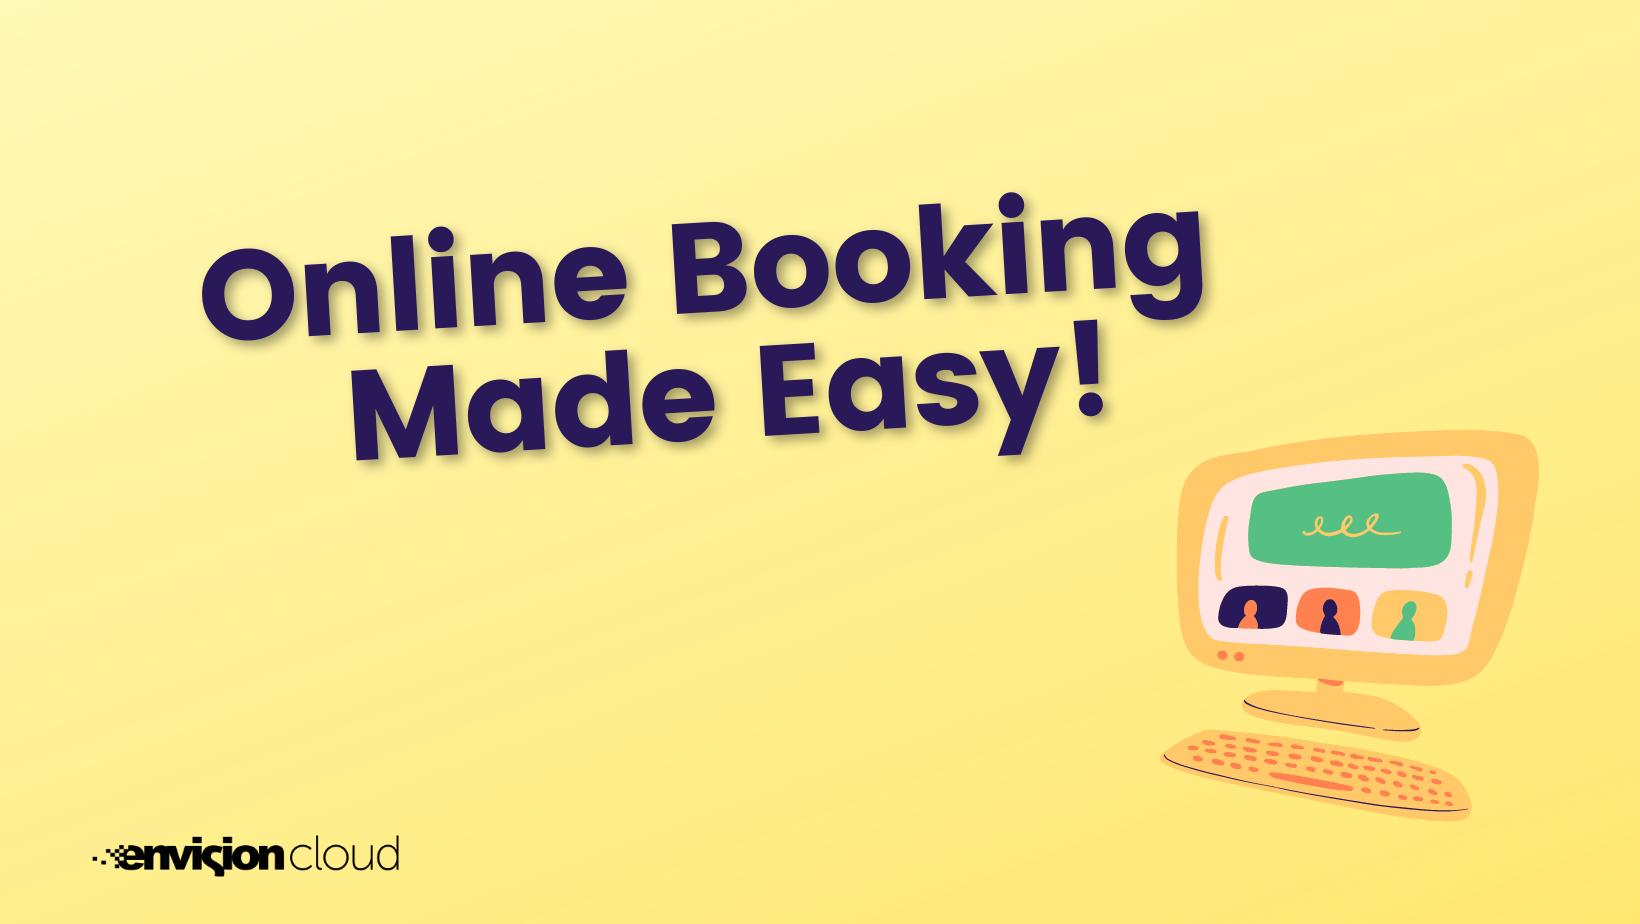 online booking made easy text with yellow background and image of a computer screen